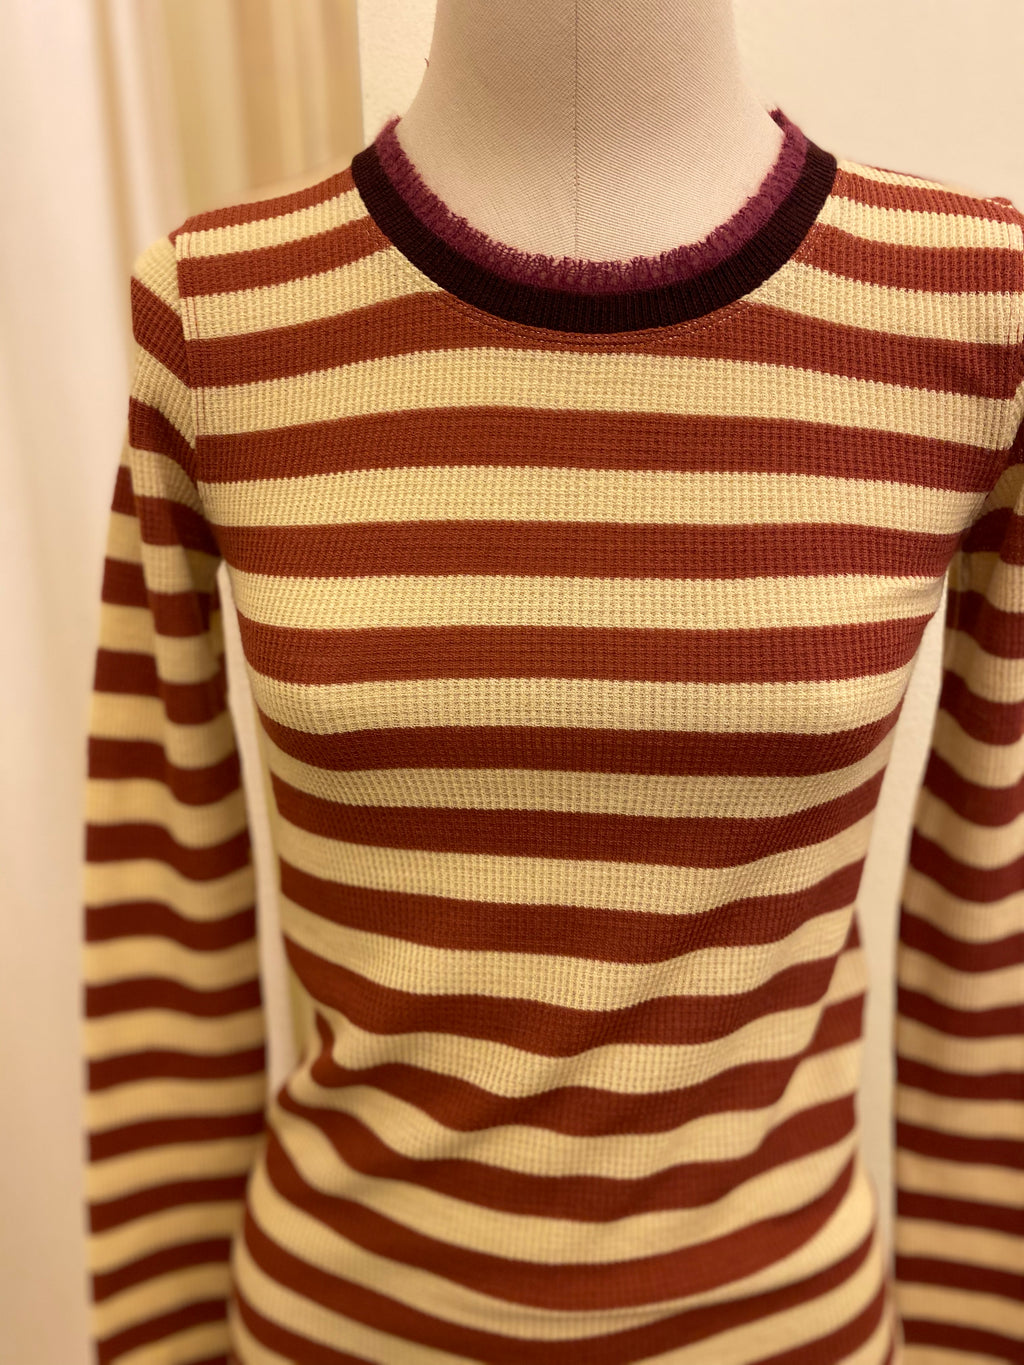 T-shirt Lana / Wool FORTE FORTE _ Stripes Red